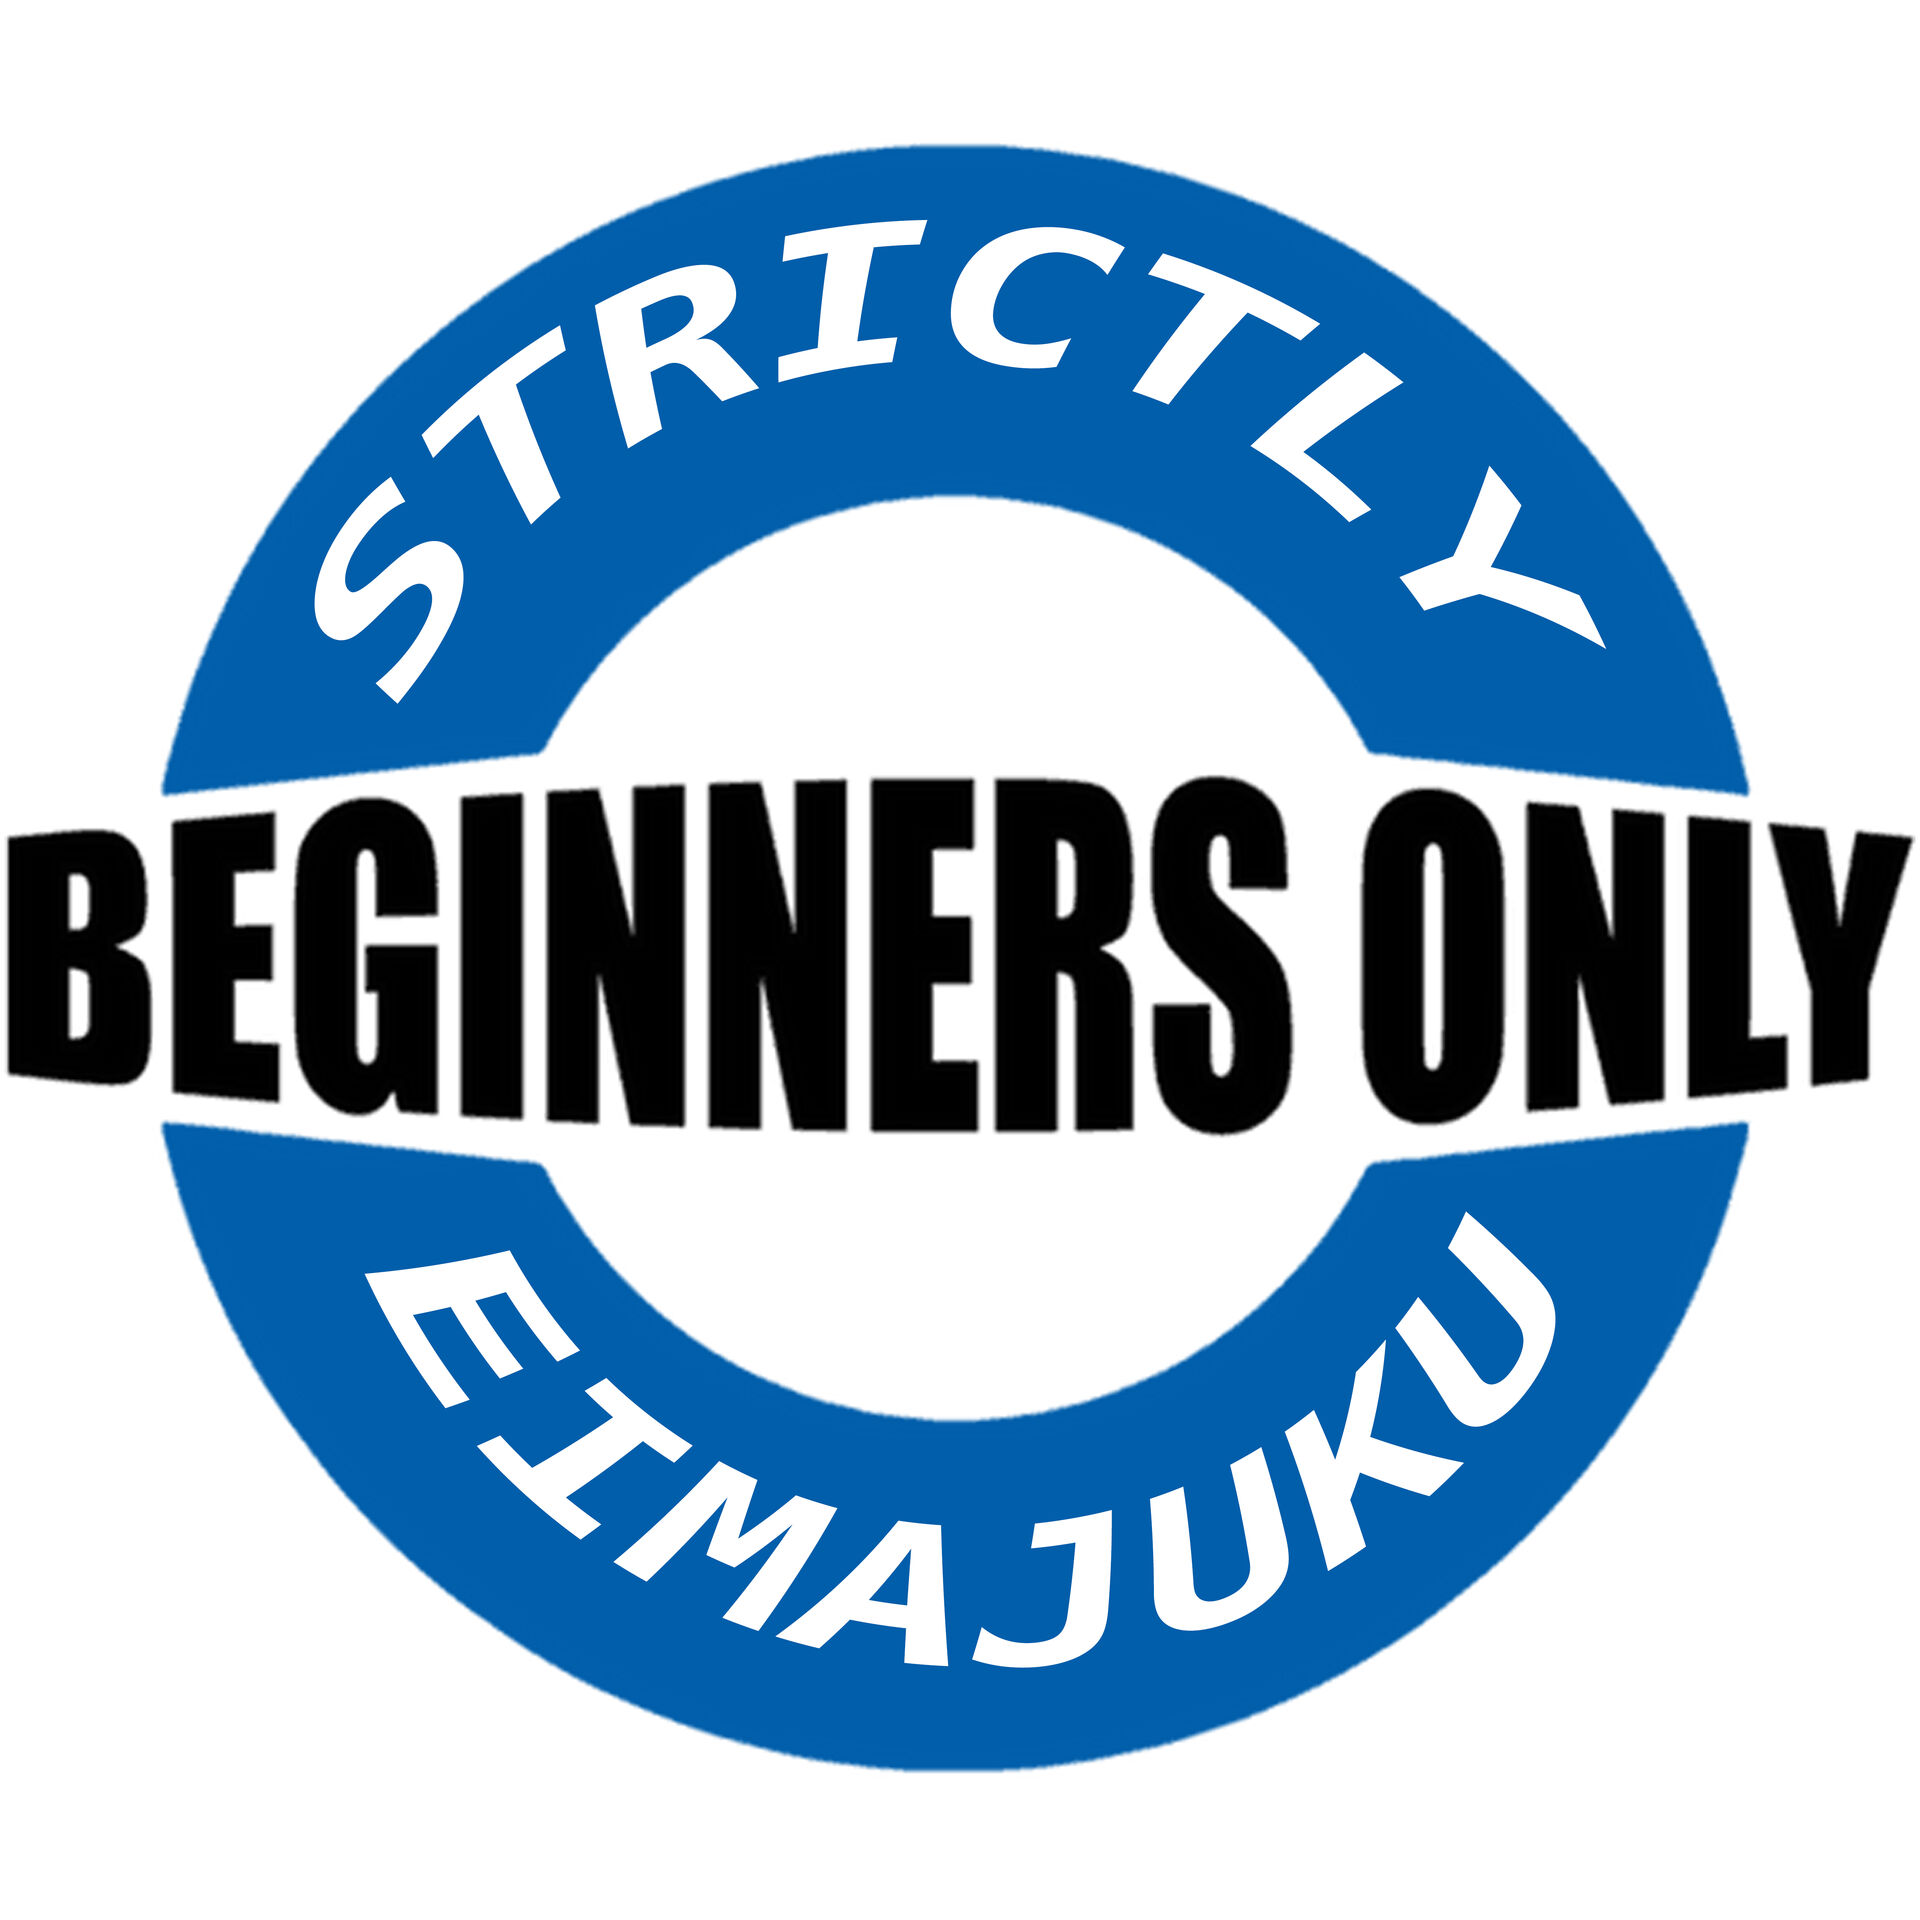 BEGINNERS ONLY